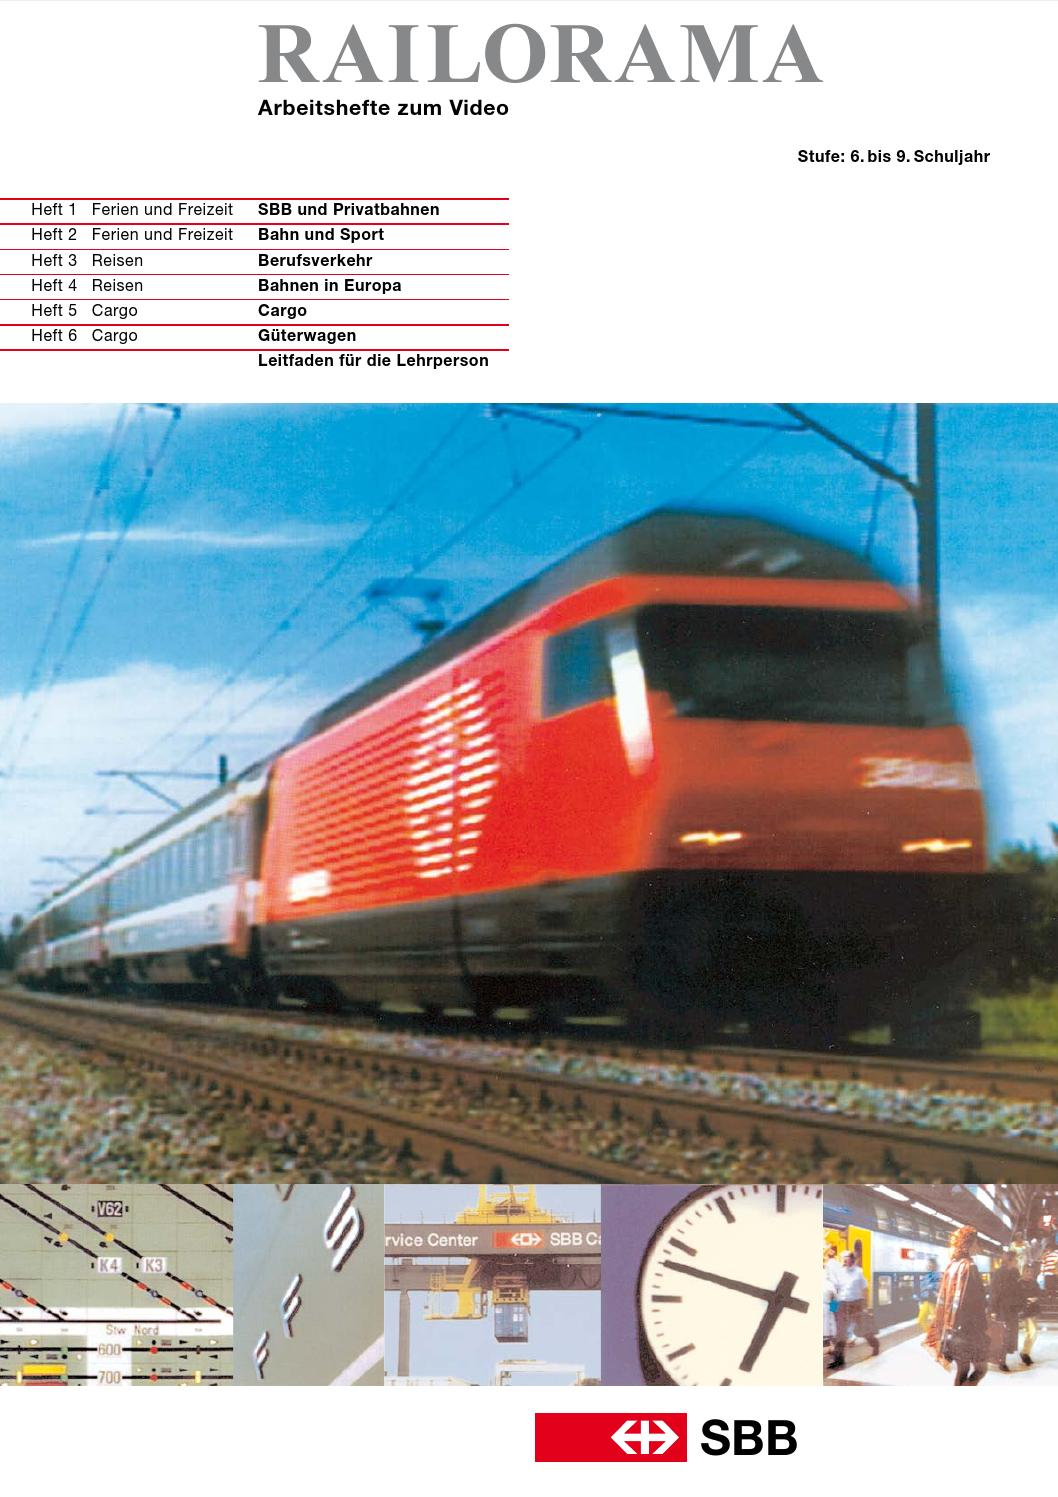 SBB Railorama by d-signsolution.com - issuu